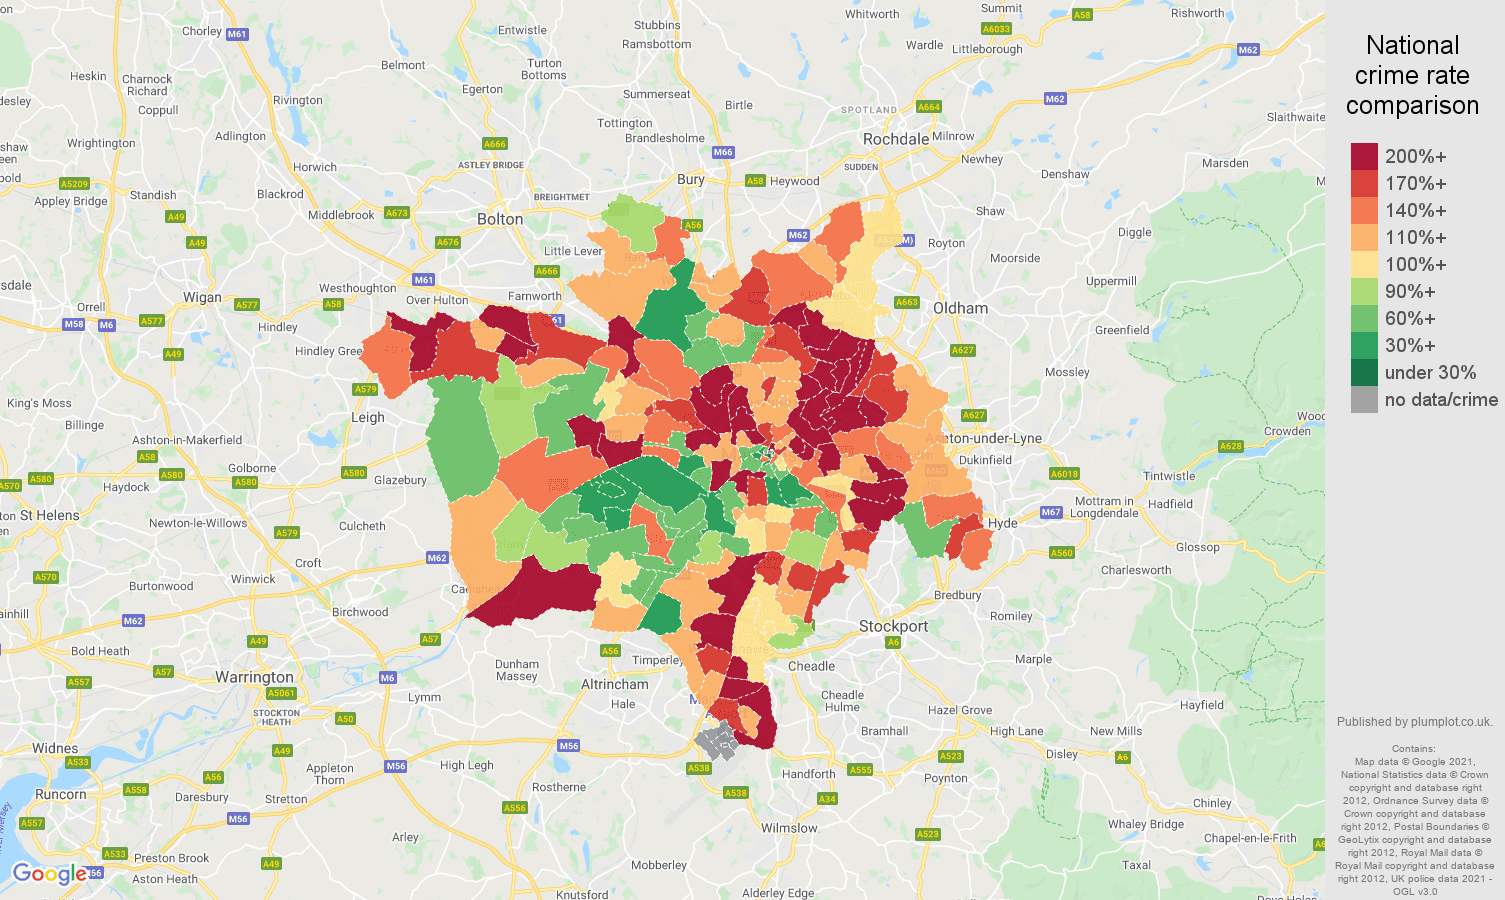 Manchester criminal damage and arson crime rate comparison map